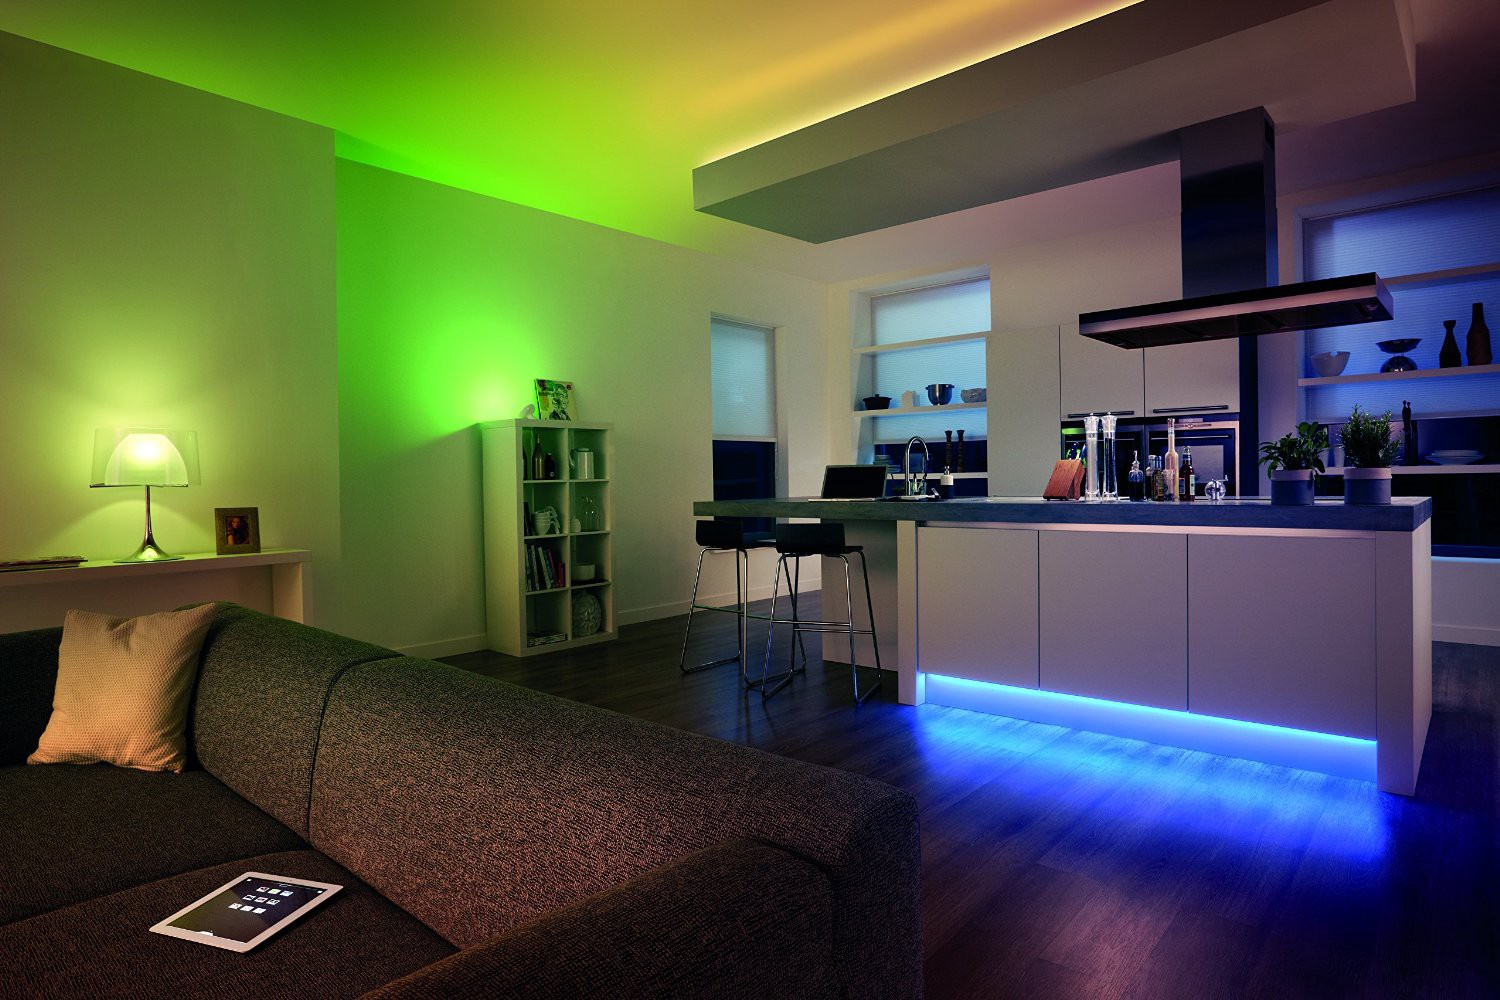 Philips Hub Philips Hue Ideas To Make Your Room Dope Dike Musk Medium